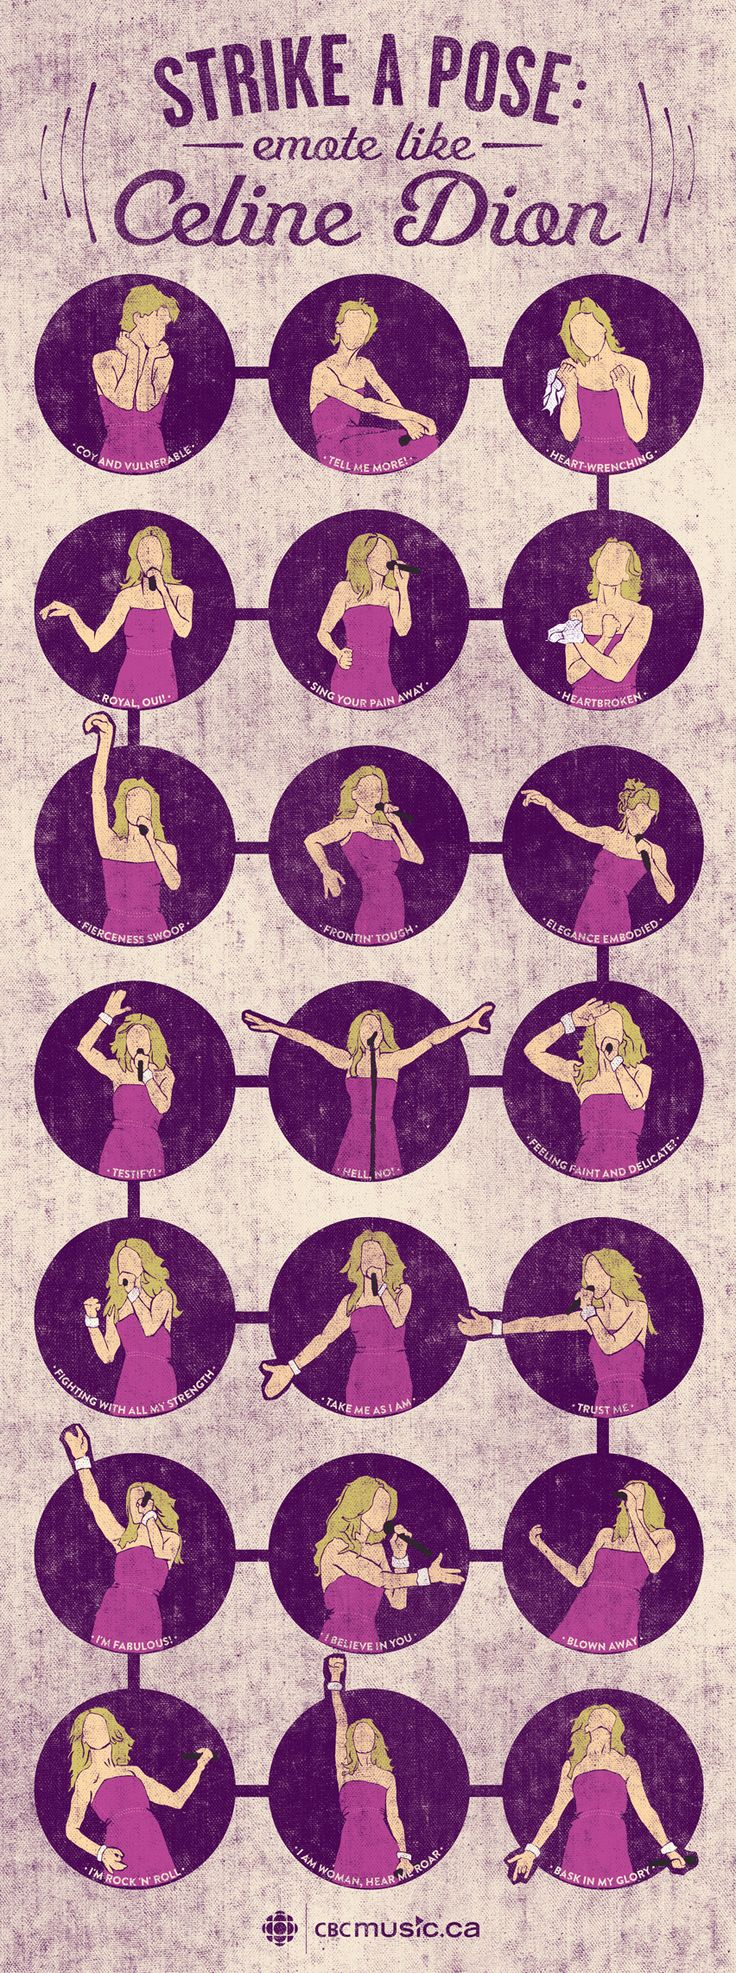 CelineDion-Strike-A-Pose-Infographic-852px.jpg